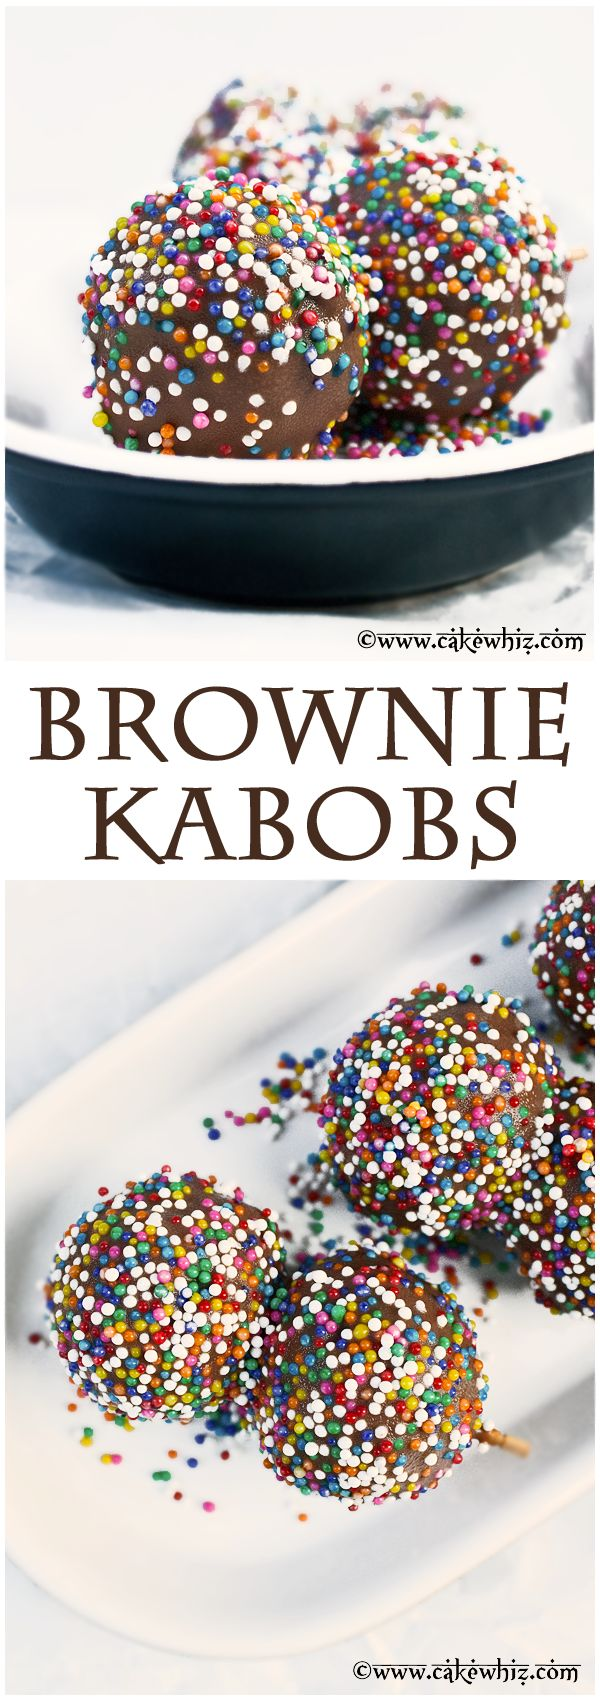 Bite sized BROWNIE KABOBS loaded with melted chocolate and covered in colorful sprinkles! Soft, fudgy, and chocolicious! From cakewhiz.com